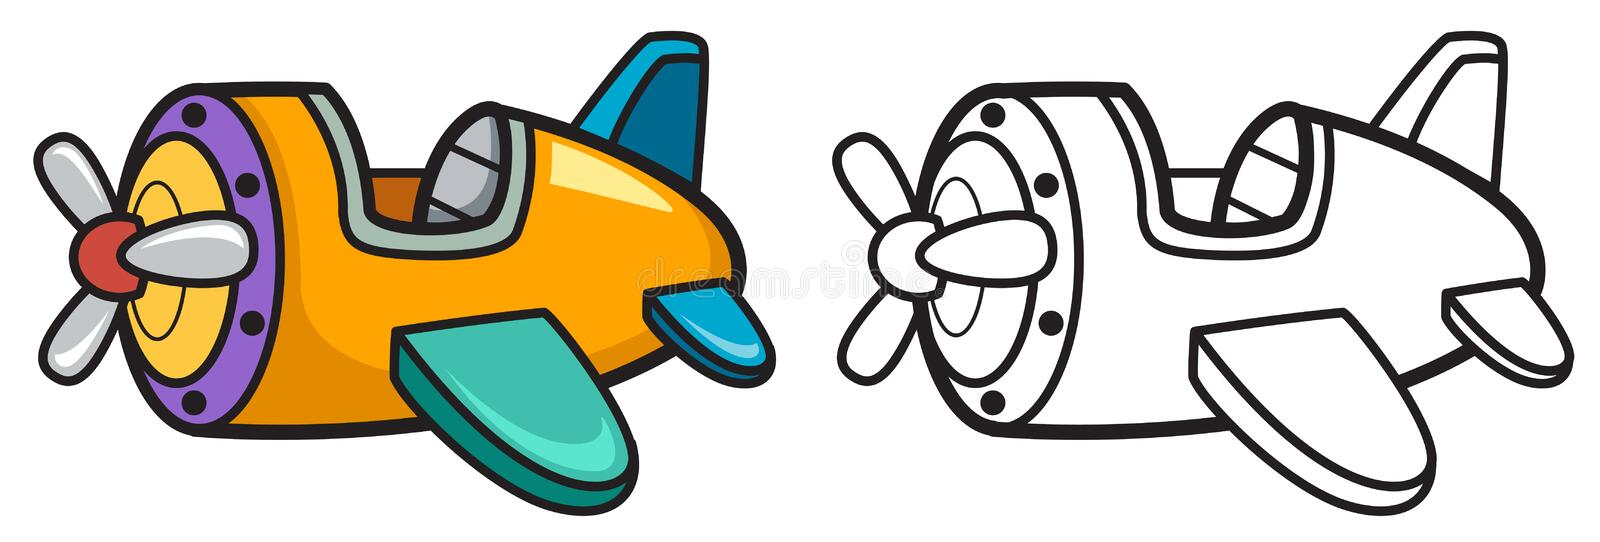 Colorful and black and white airplane vector illustration